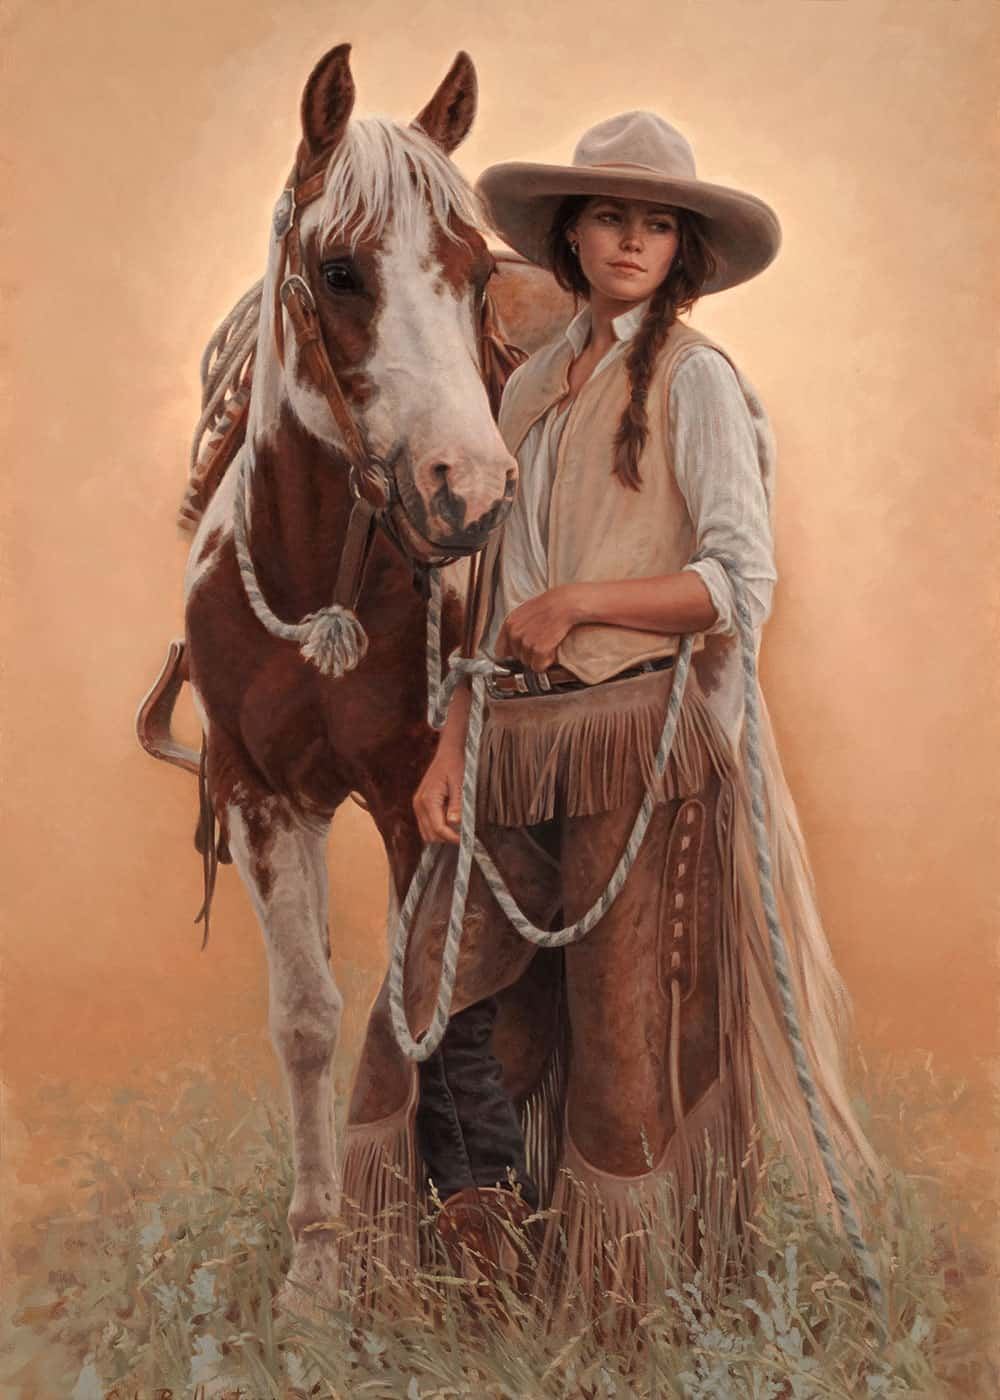 summer solace carrie ballantyne cowgirl magazine